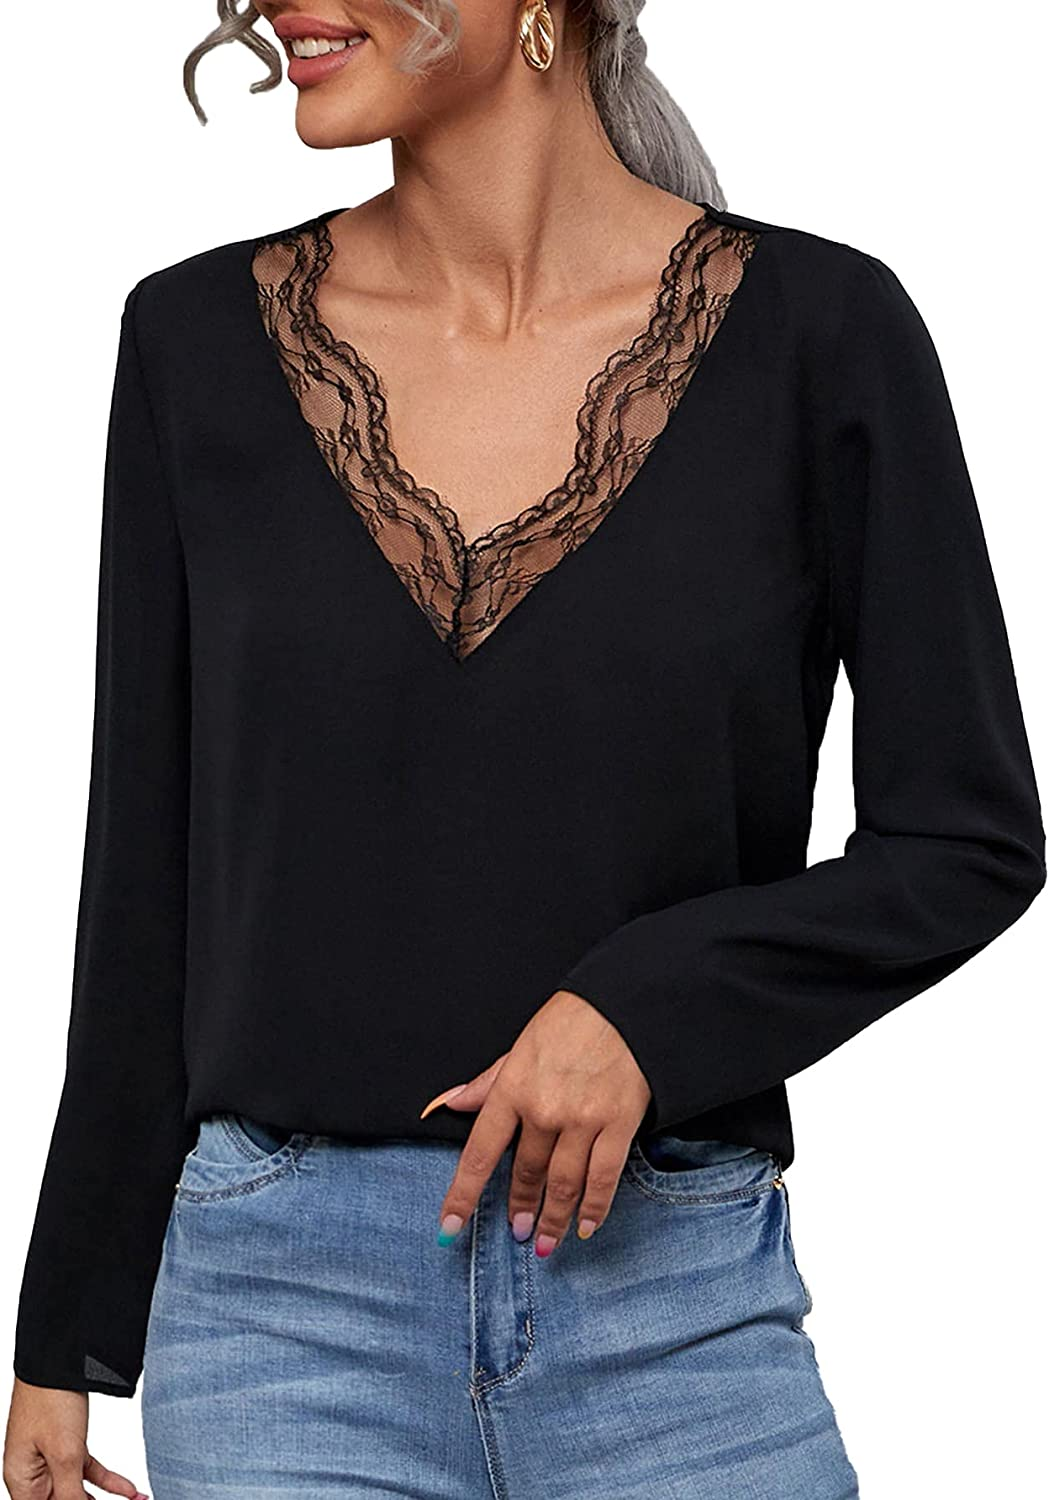 Milumia Women's Sexy Lace Trim Long Sleeves Camisole Dressy Tank Tops